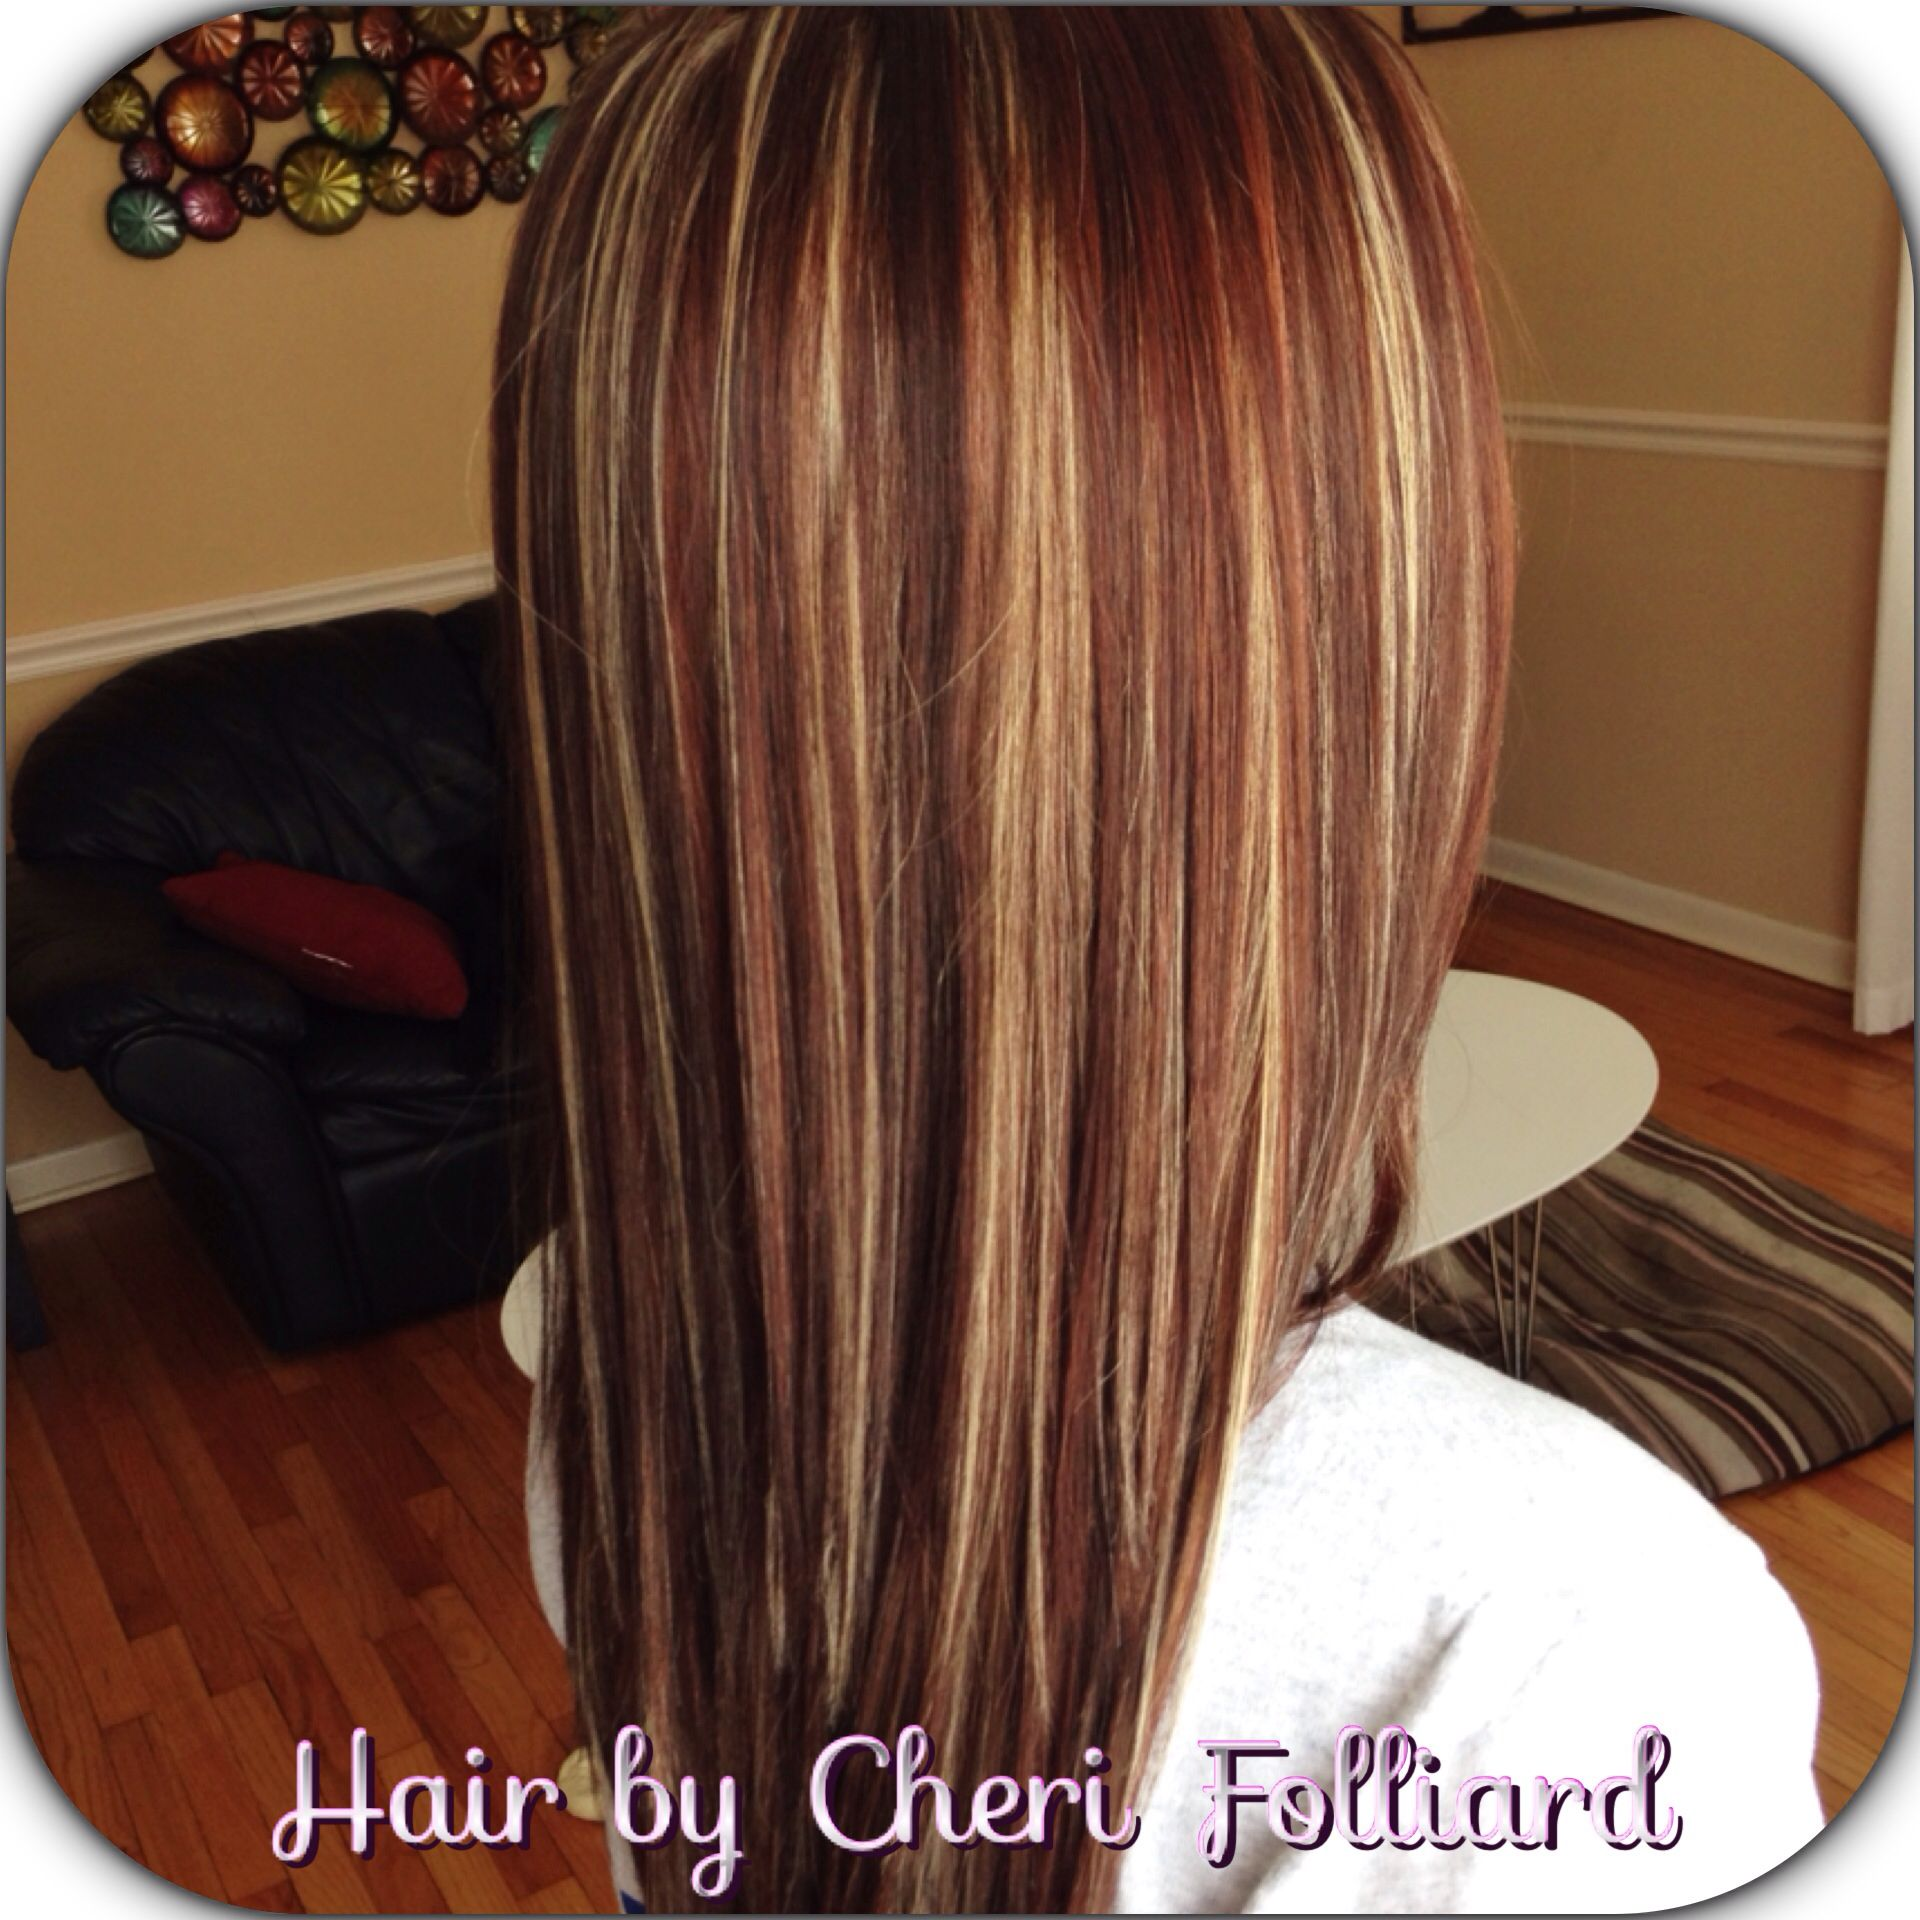 Dark Brown Over All Color With Blonde Red Highlights Hair Styles Auburn Hair With Highlights Hair Color Auburn